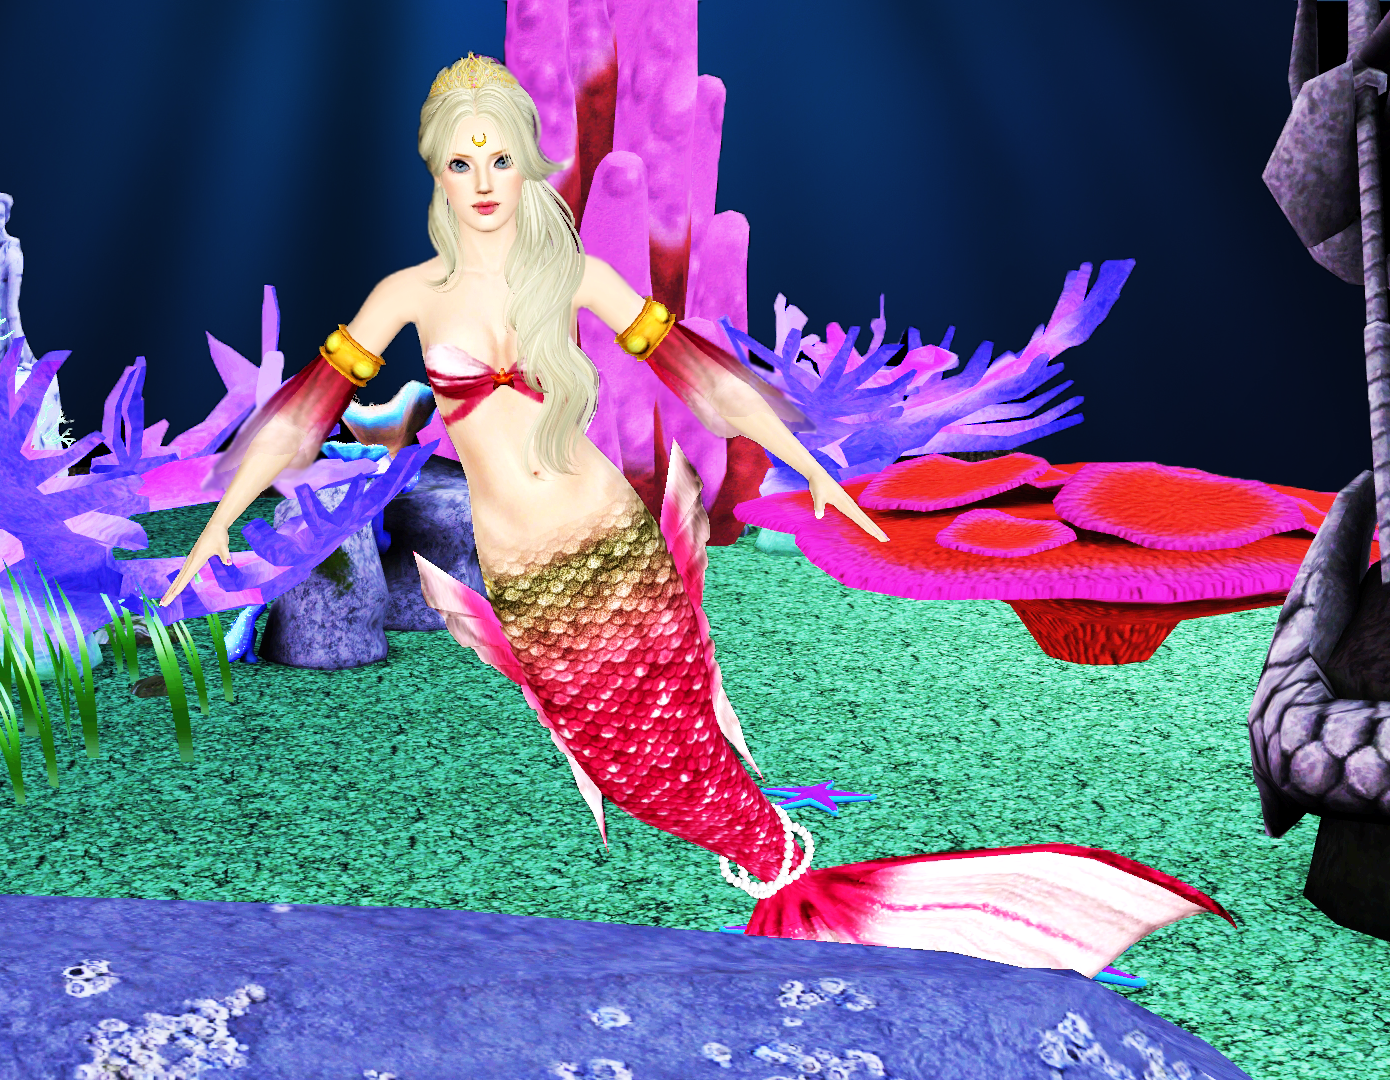 The sims 3 mermaid tail download erotic teen